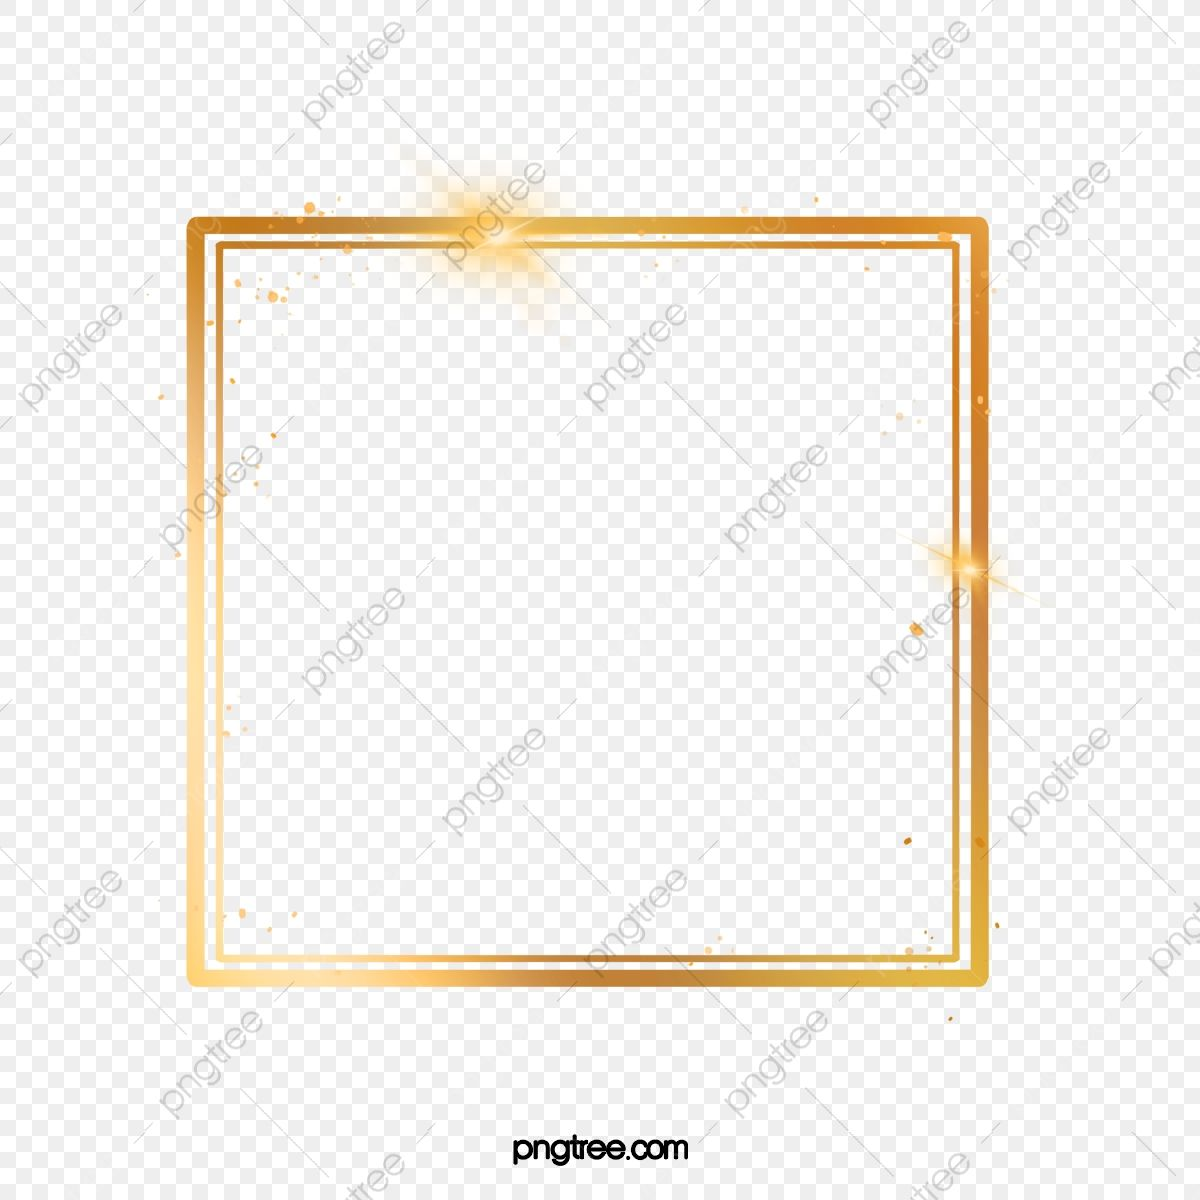 Golden Effect Decoration Square Frame Frame Golden Luminous Efficiency Png Transparent Clipart Image And Psd File For Free Download In 2020 Square Frames Clip Art Graphic Design Background Templates